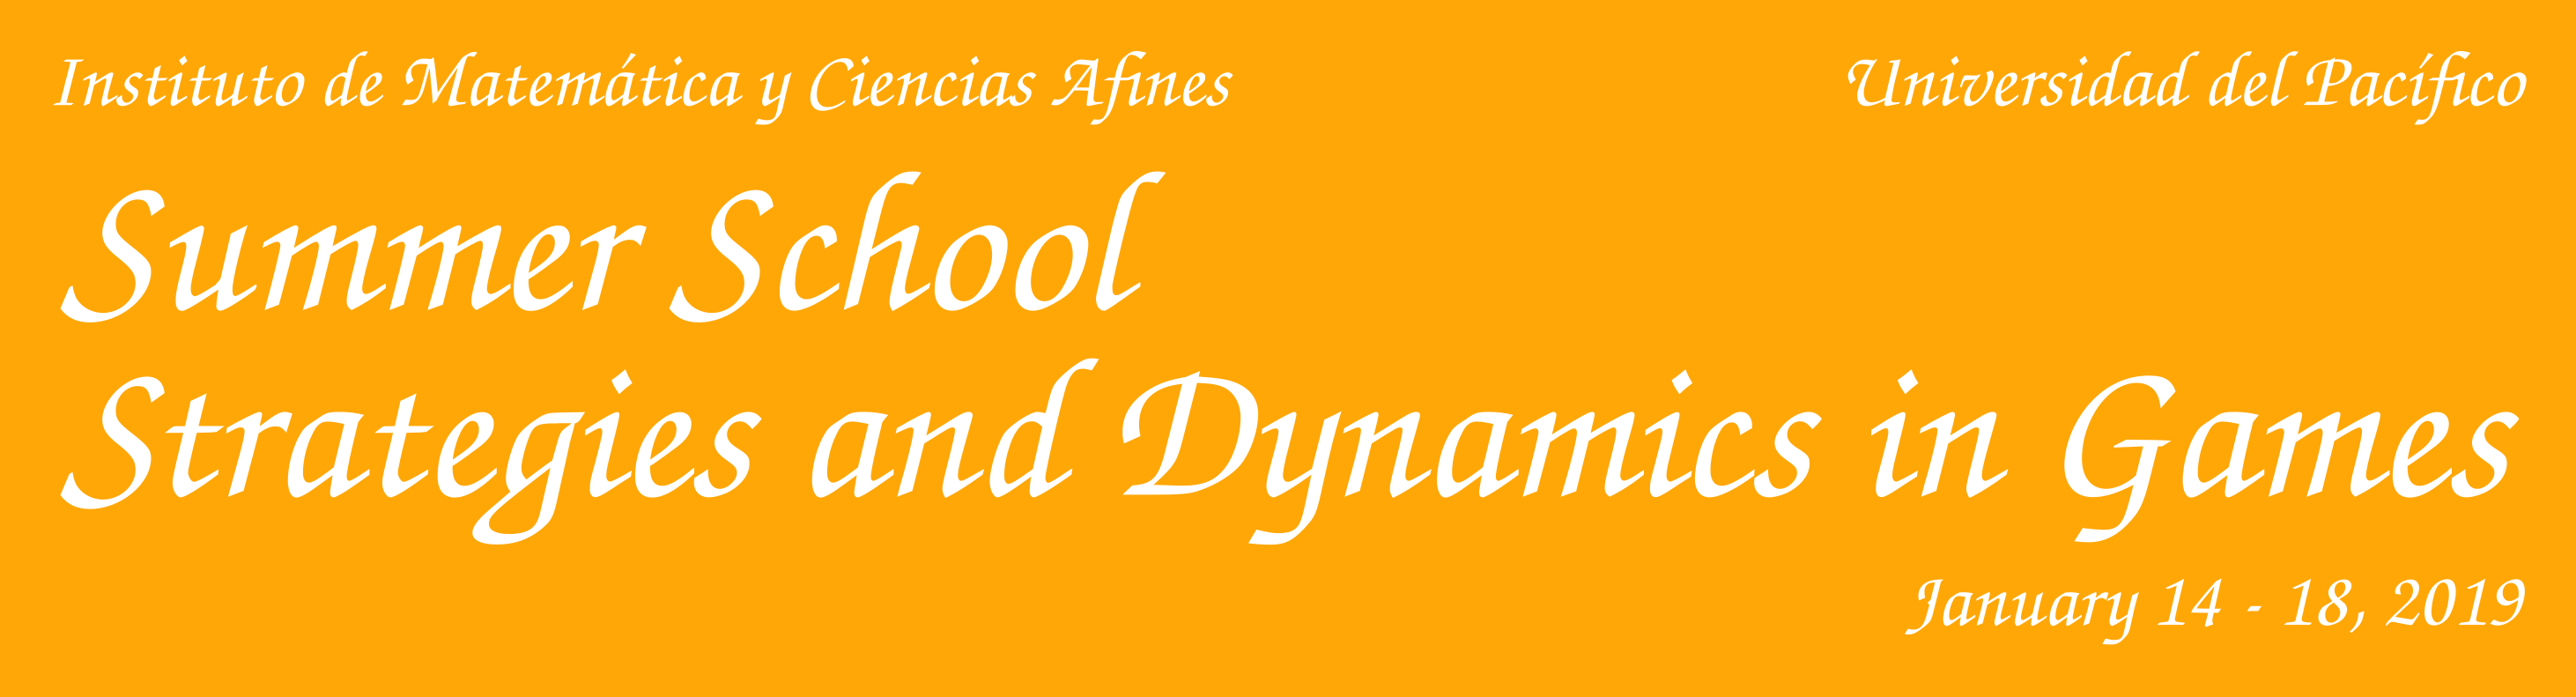 Summer School Strategy and Dynamics in games